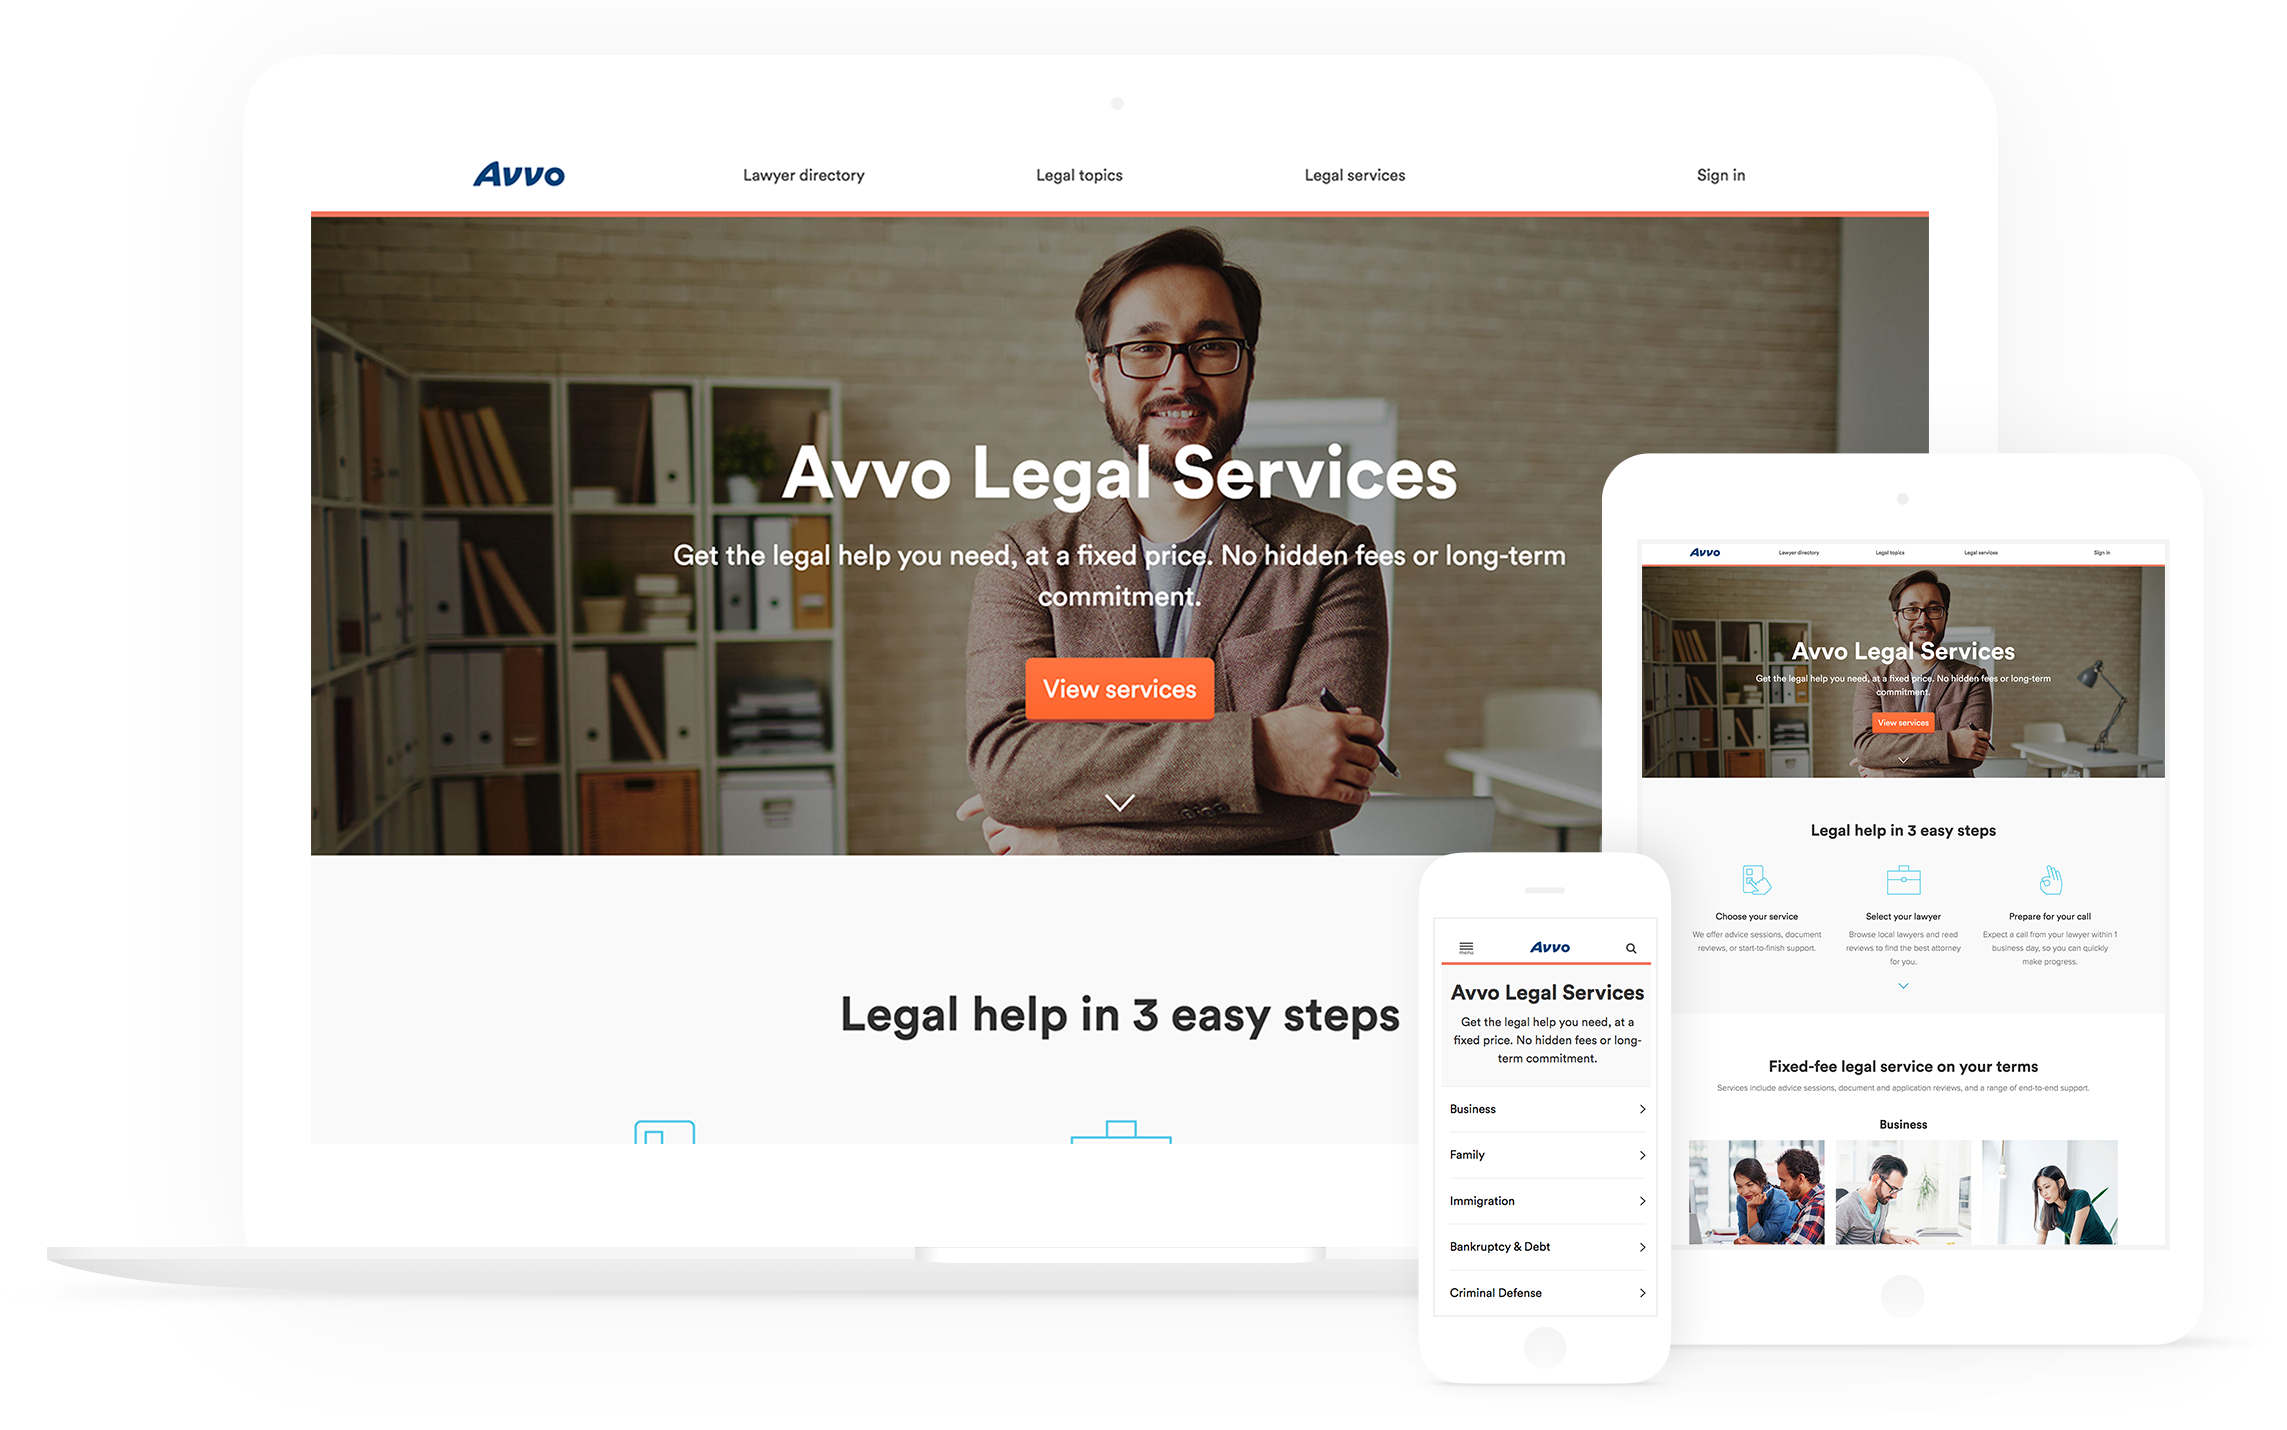 Avvo Legal Services